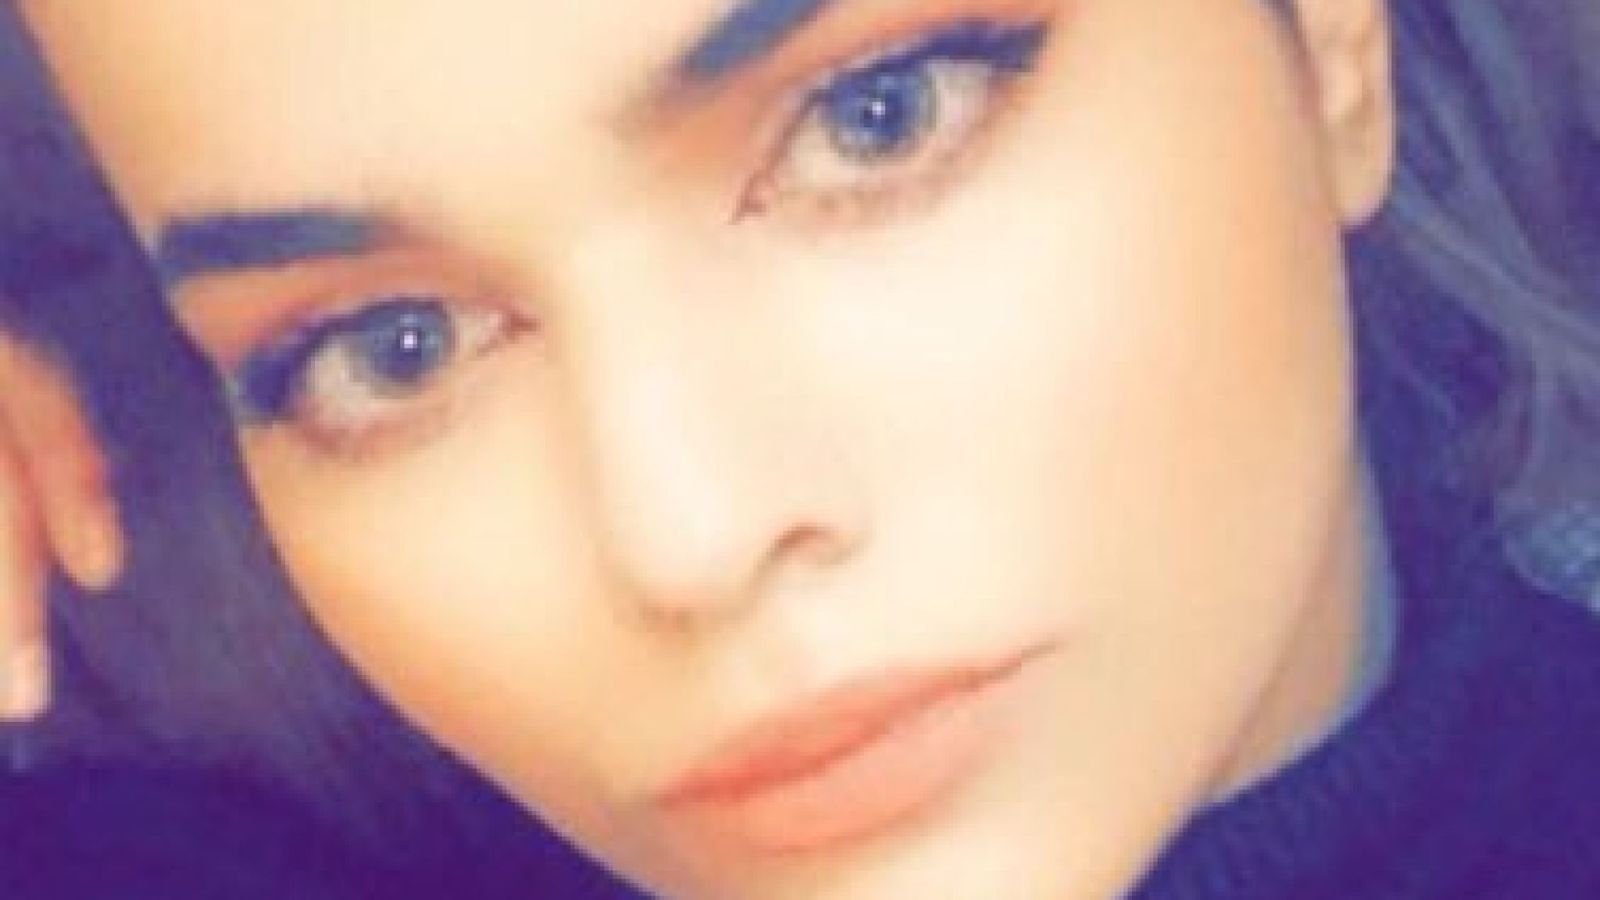 Saudi teen Rahaf Mohammed Alqunun who fled 'abusive' family is to fly to Canada